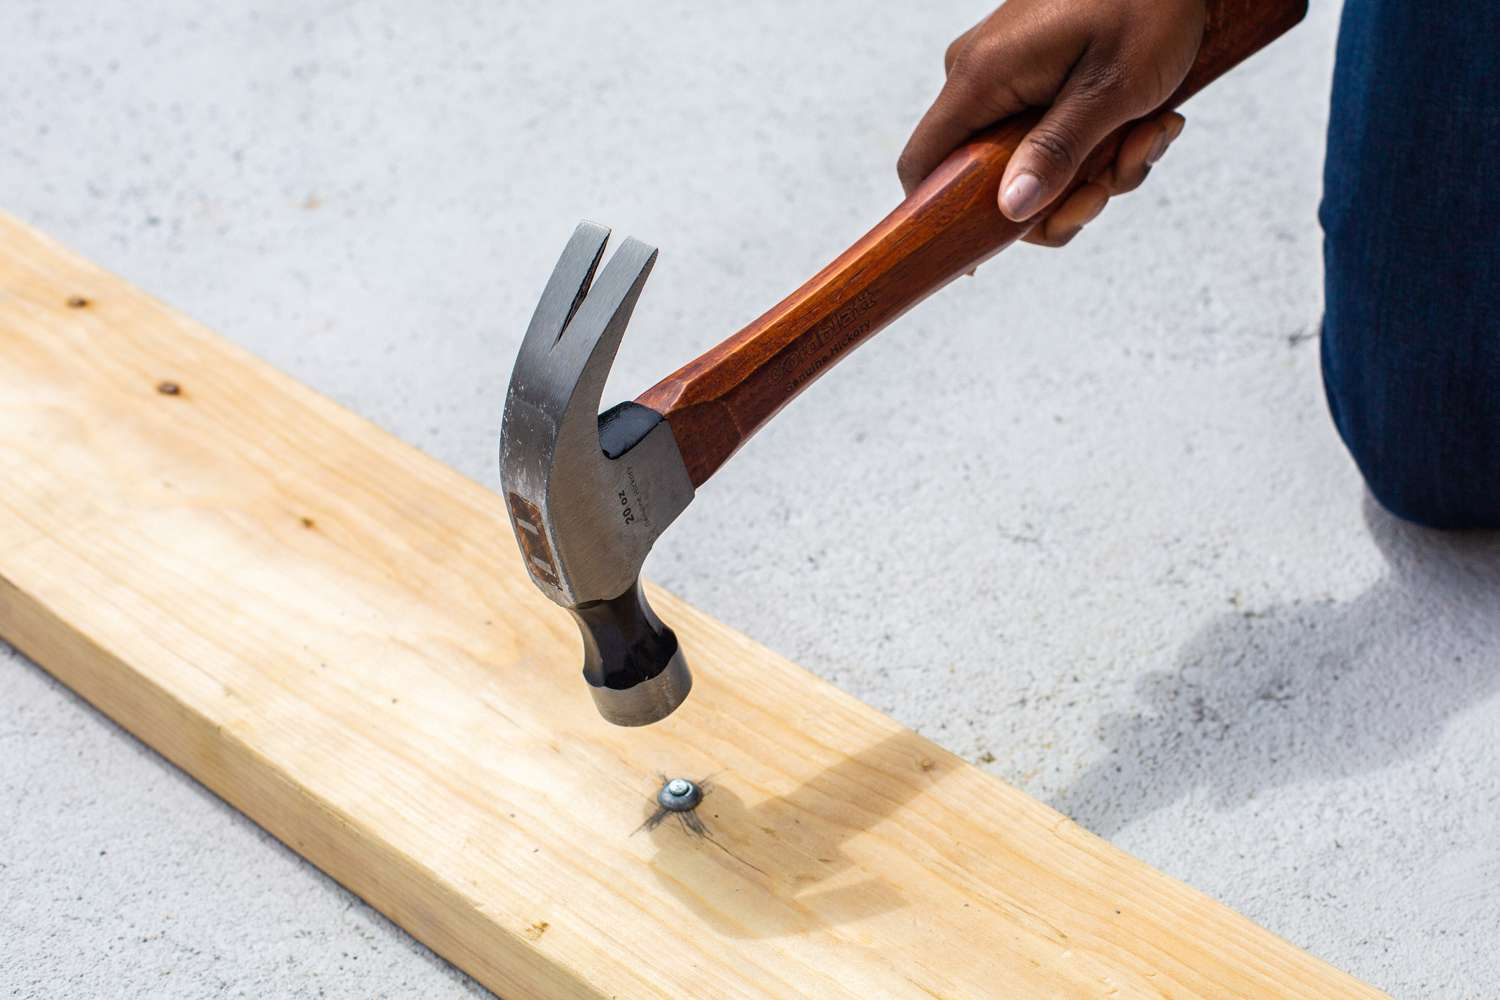 Hammer driving nail into wooden board till flushed